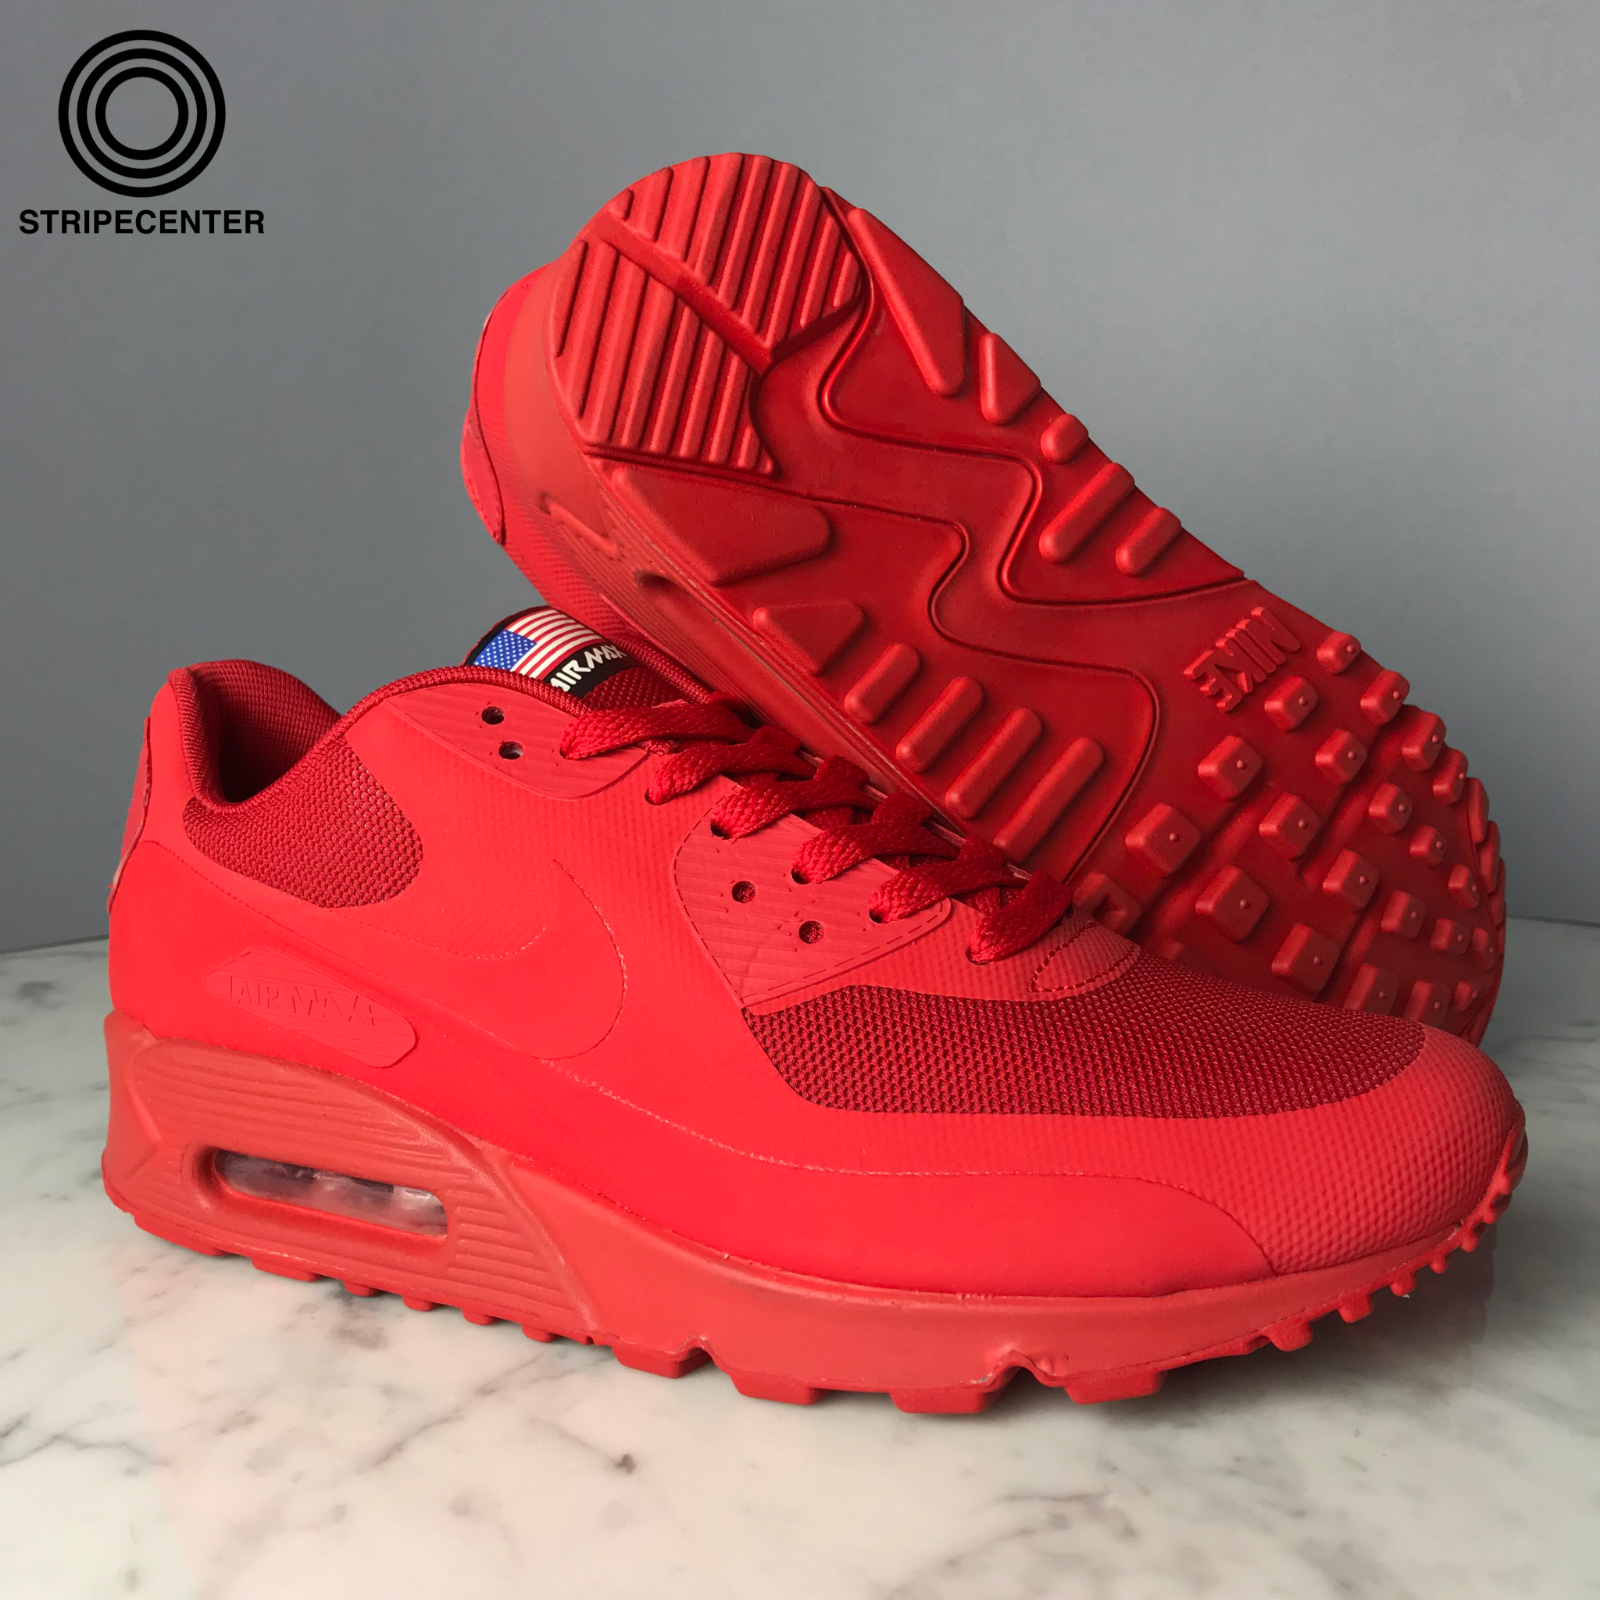 buy online 0d68f 50e82 ... best price official store nike air max 90 hyperfuse independence day  sport red 613841 660 988b4